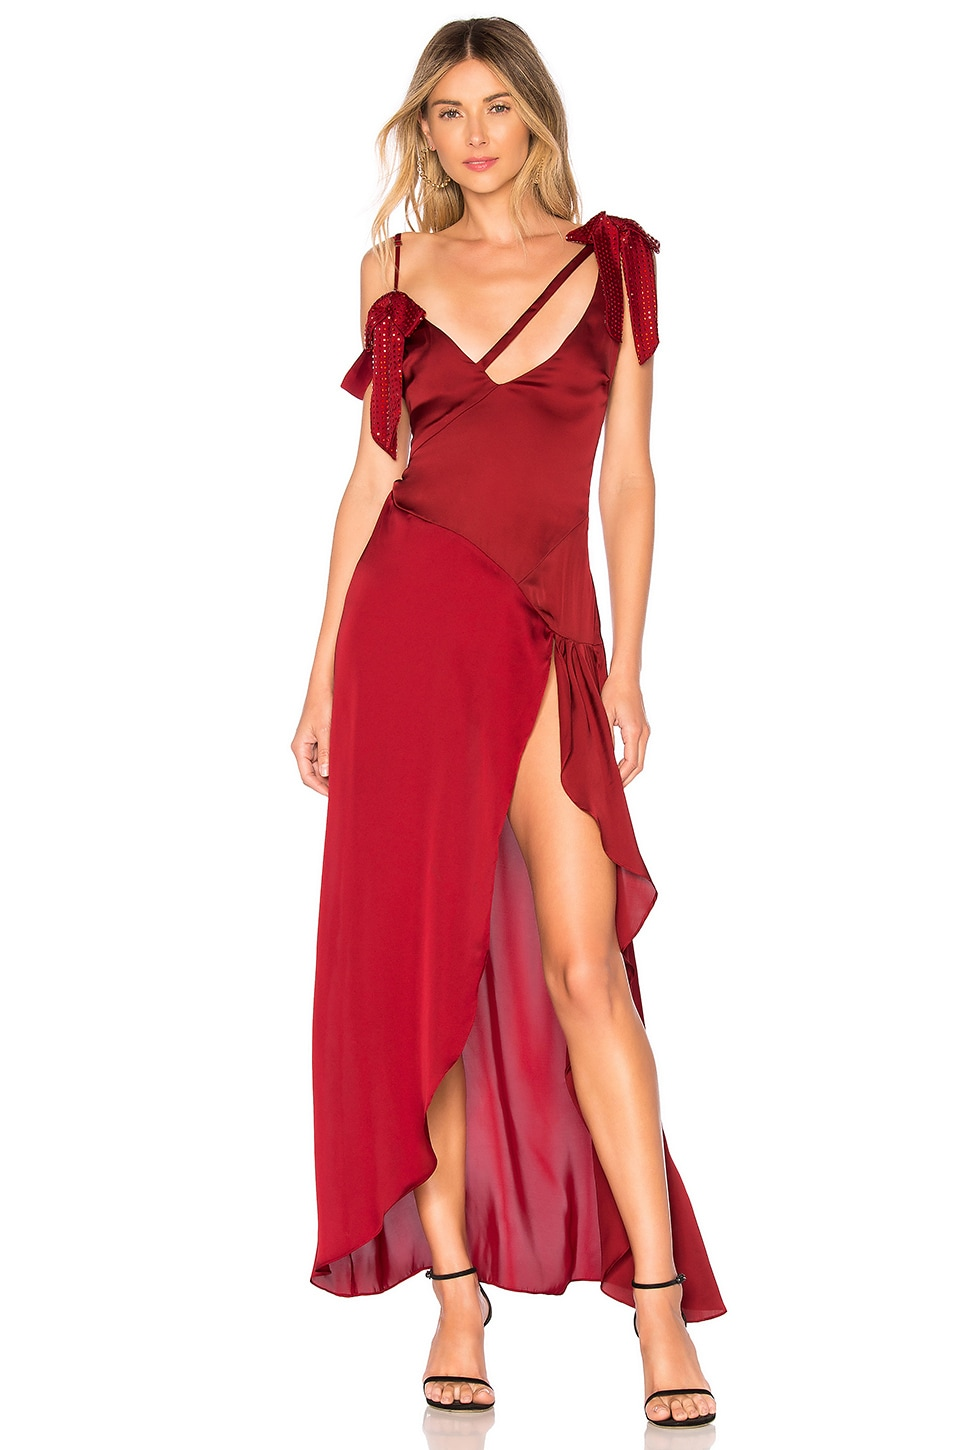 For Love & Lemons Bright Lights Maxi Dress in Red